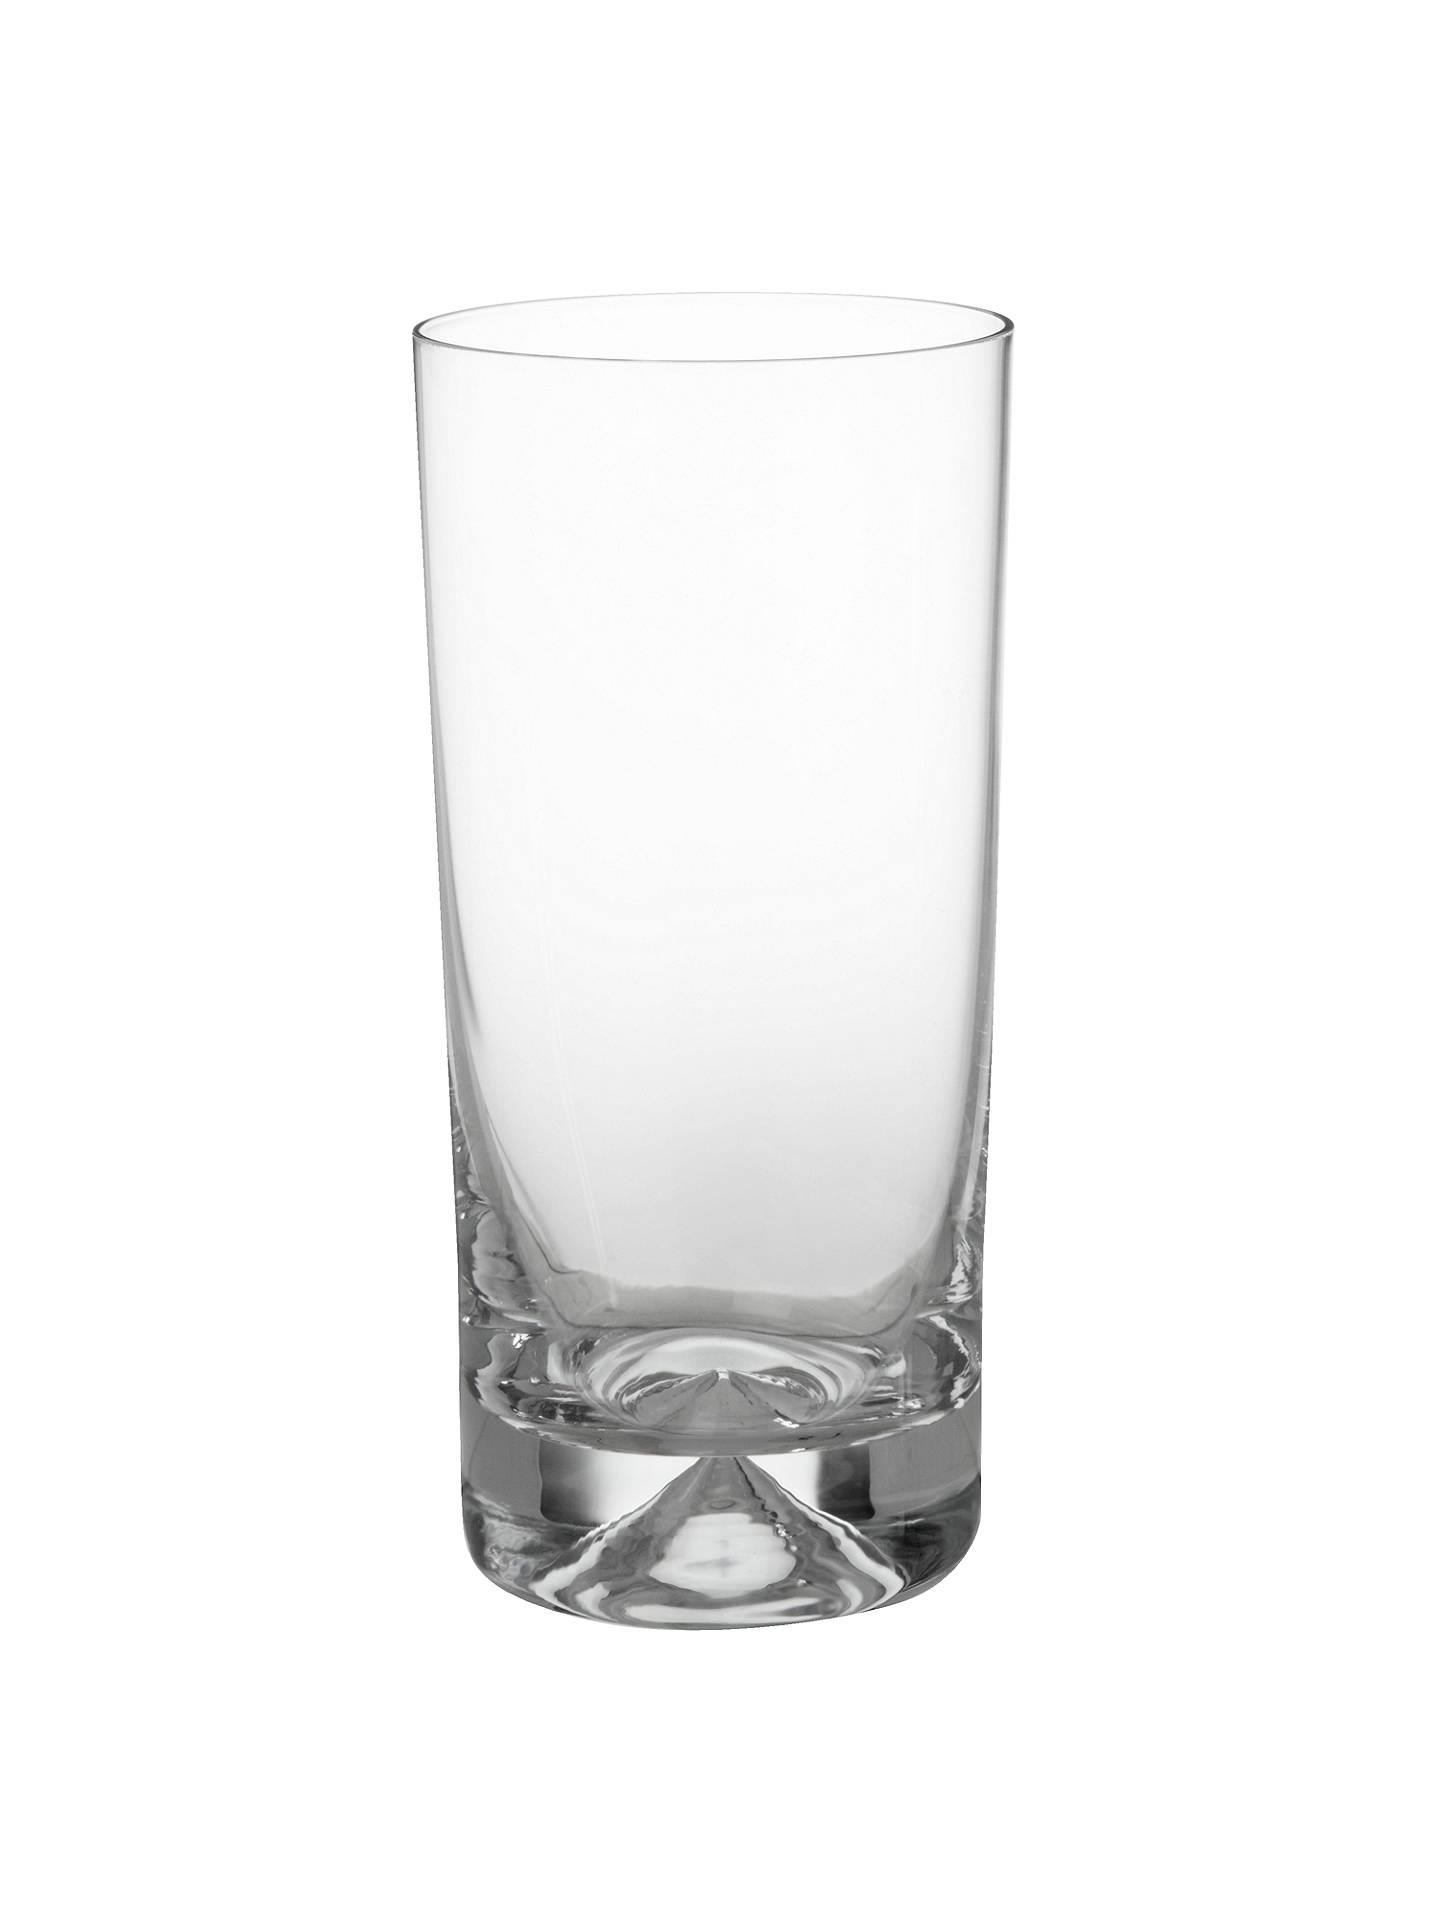 Buy John Lewis & Partners Cocktail Pyramid Long Glasses, Set of 4 Online at johnlewis.com